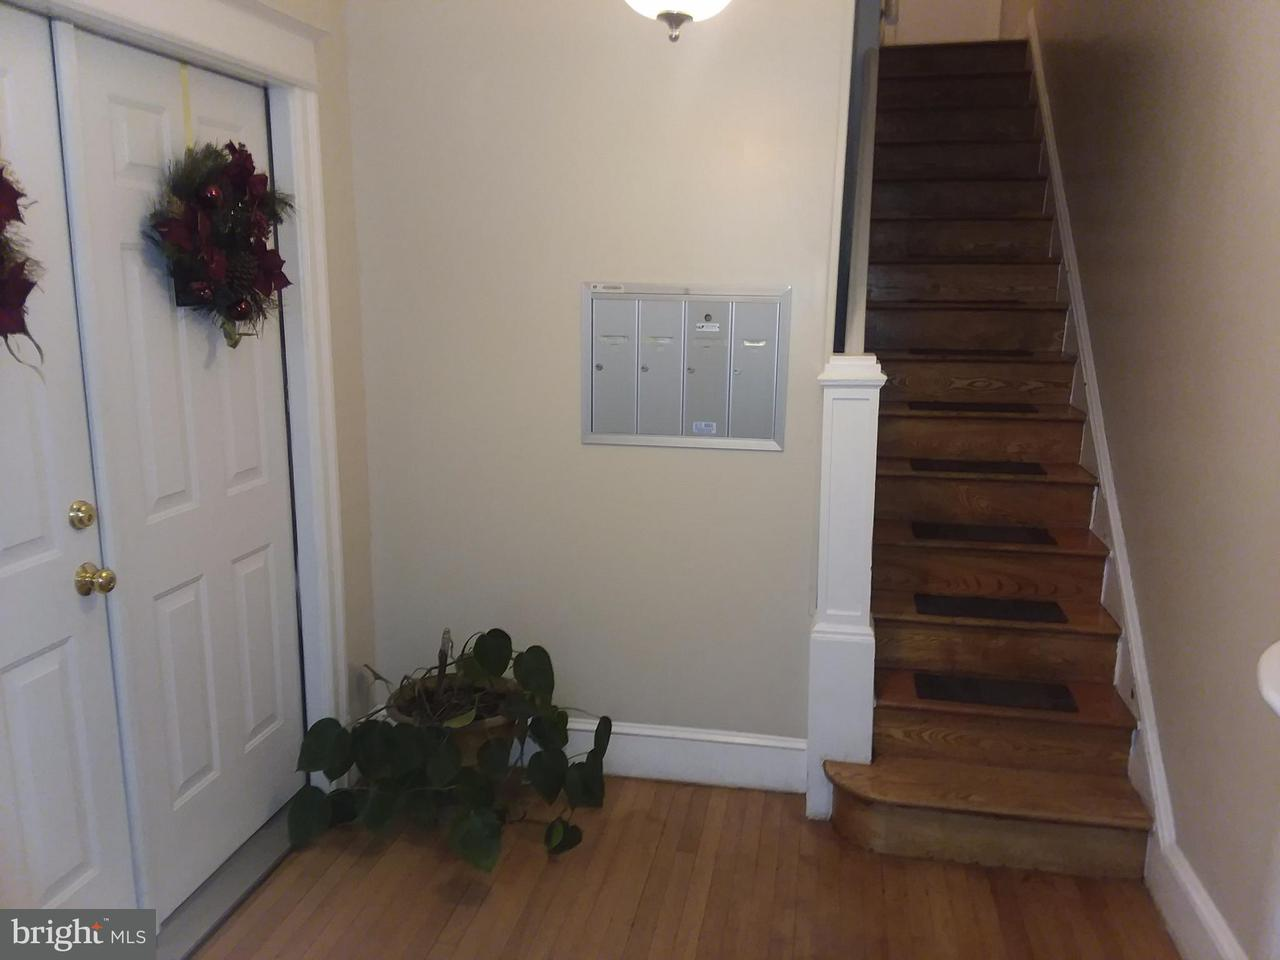 Other Residential for Rent at 5 Barney Cir SE Washington, District Of Columbia 20003 United States